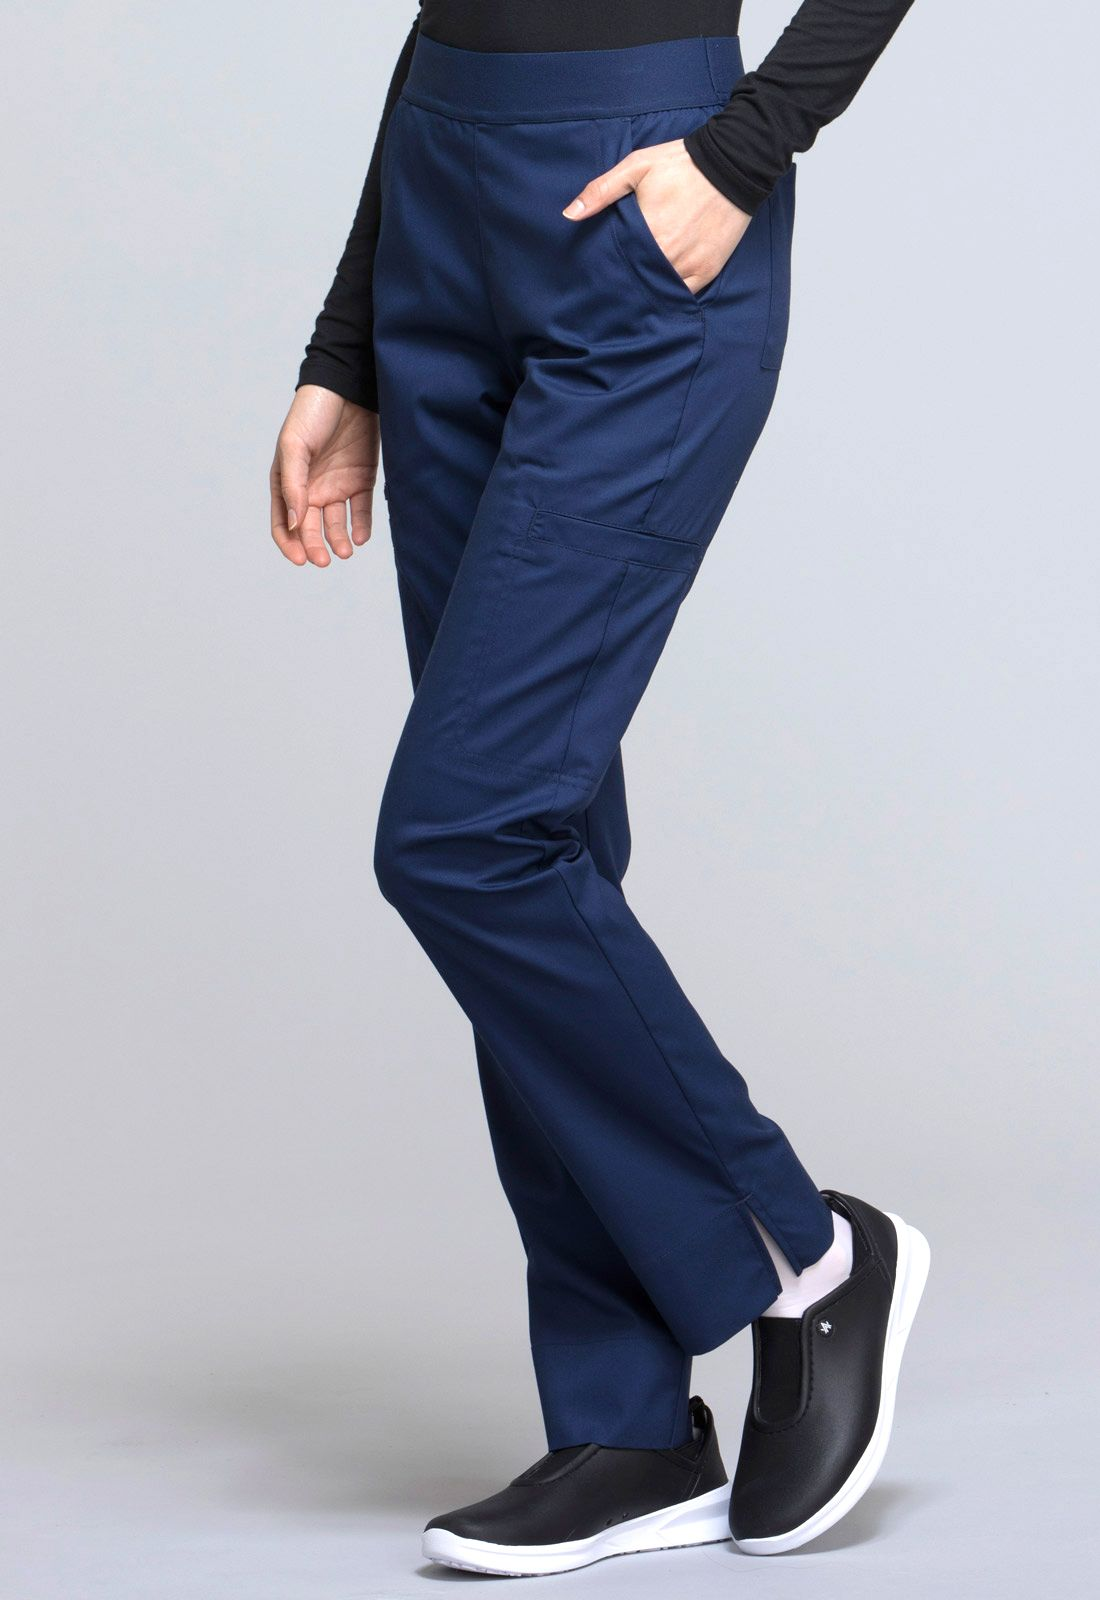 https://medcloth.by/images/stories/virtuemart/product/cherokee-ck040-navy-2.jpg